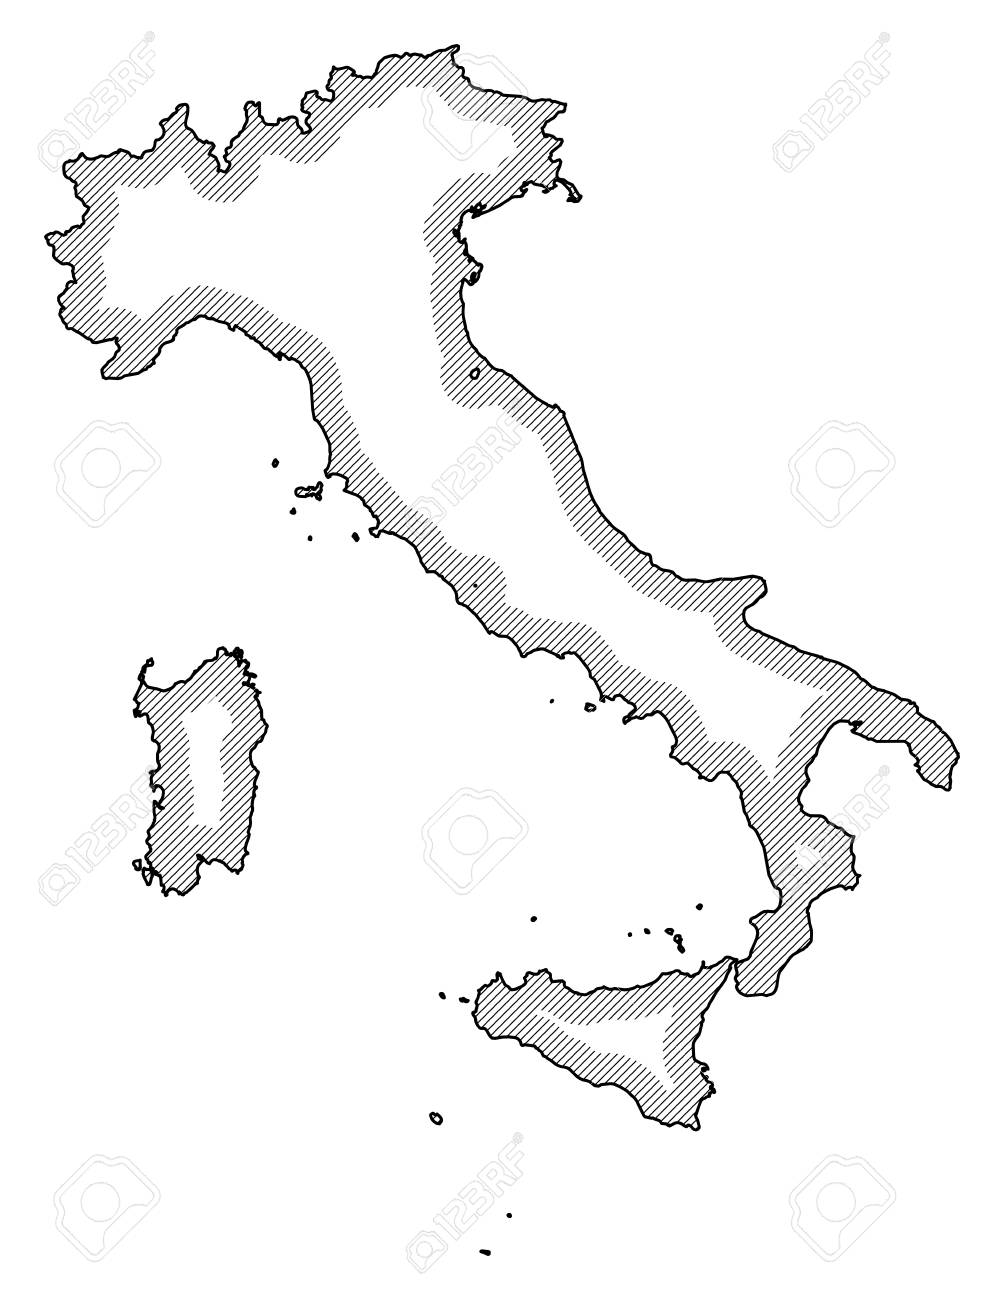 Black And White Map Of Italy.Map Of Italy In Black And White Italy Is Highlighted By A Hatching